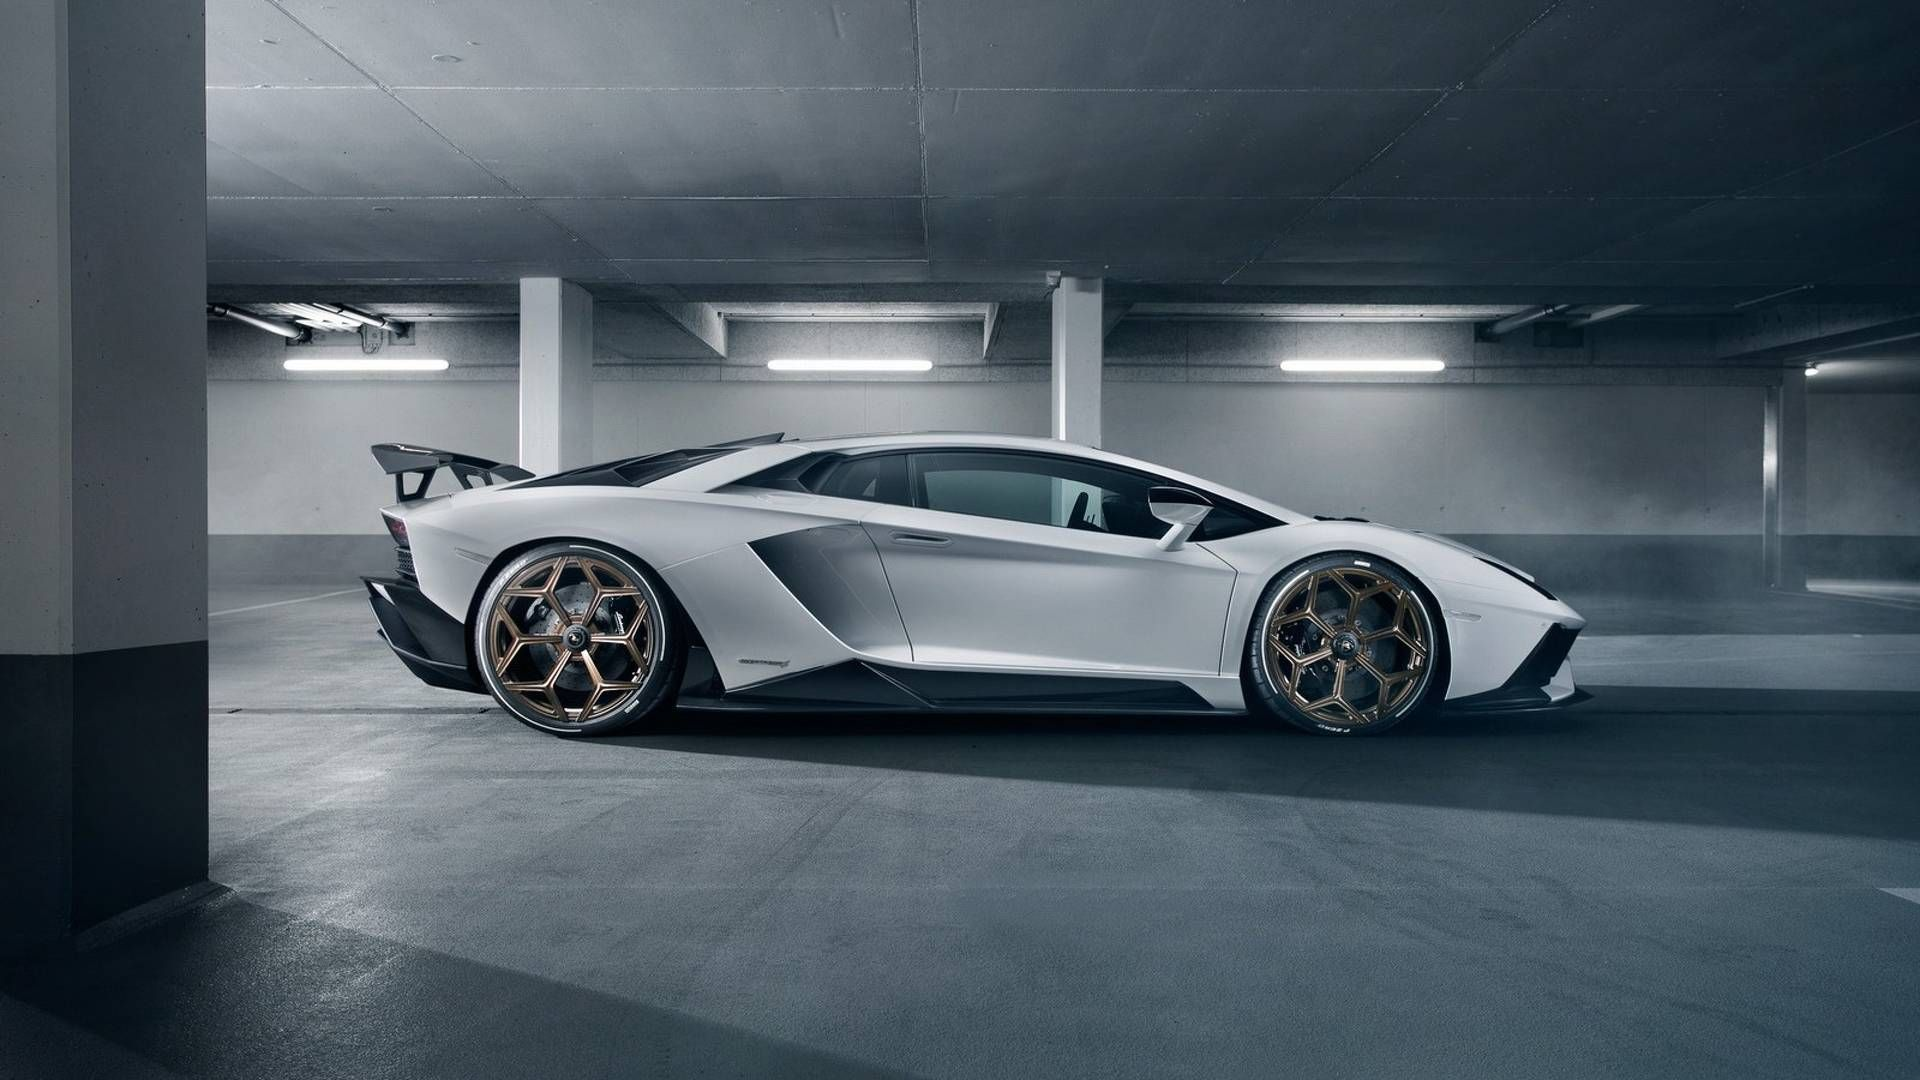 Novitec Makes Lamborghini Aventador S Lighter And More Powerful Lamborghini Aventador Lamborghini Vossen